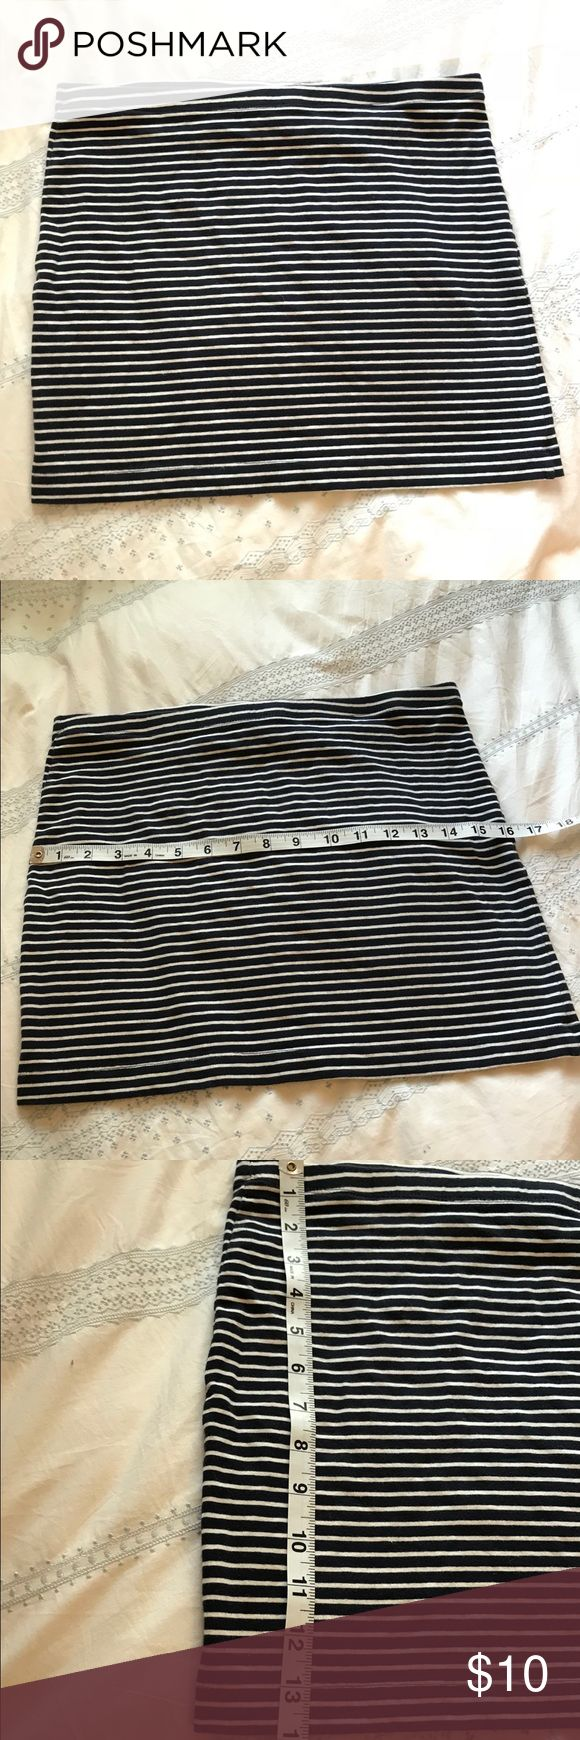 H&M Basic Striped Body-con Skirt Super soft and comfortable navy and white stripe body-con skirt by H&M. There is a small mark from lipstick because my roommate thought this item was a tube top before deciding to not wear it. This item has a lot of life left, and I hope someone out there needs a flattering skirt! H&M Skirts Mini